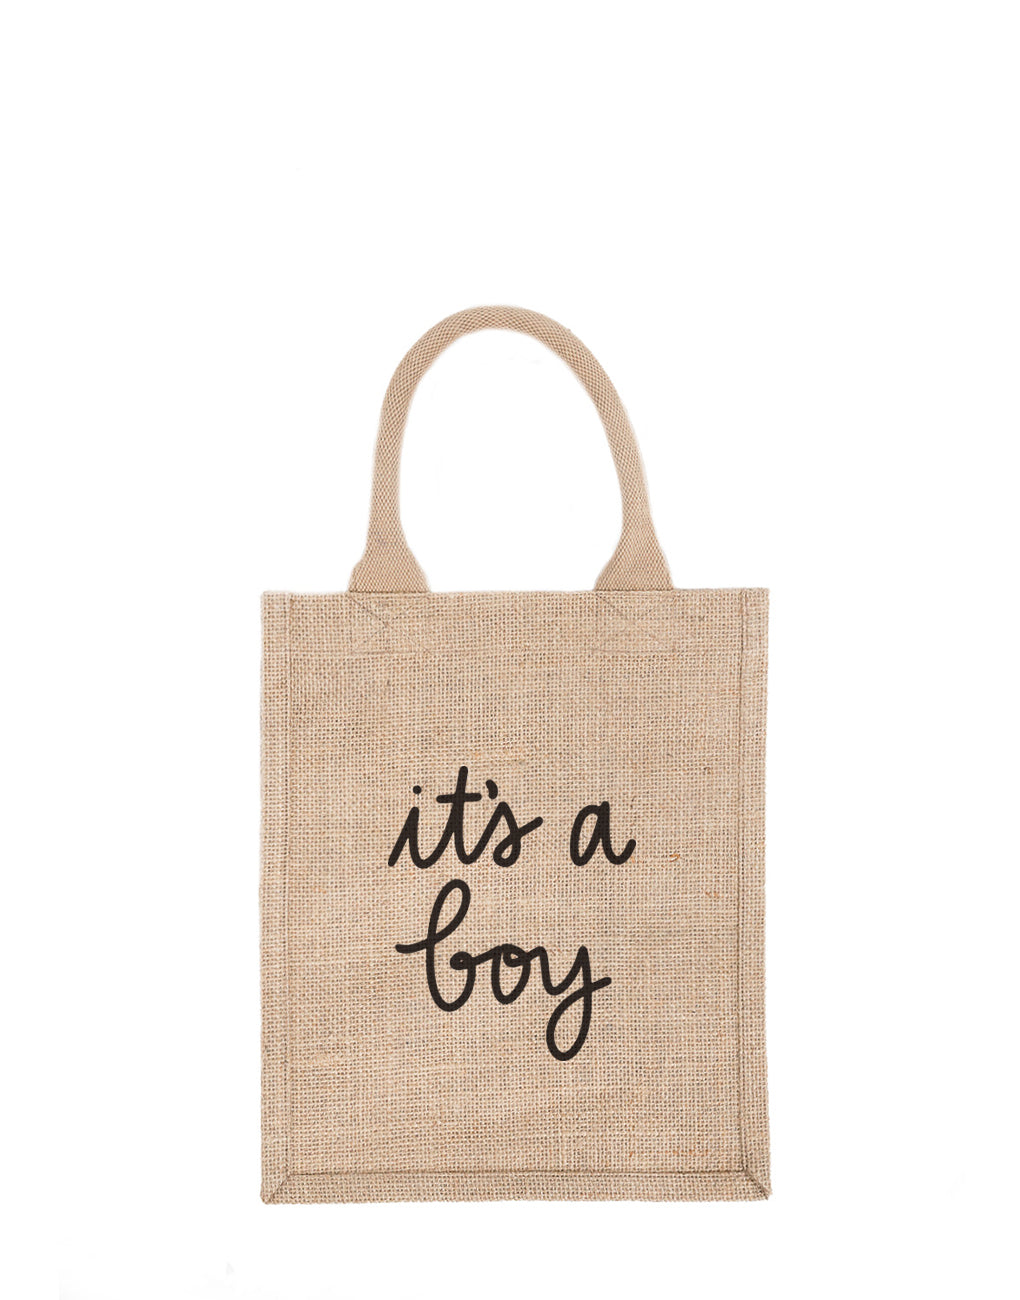 Medium It's A Boy Reusable Gift Tote In Black Font | The Little Market